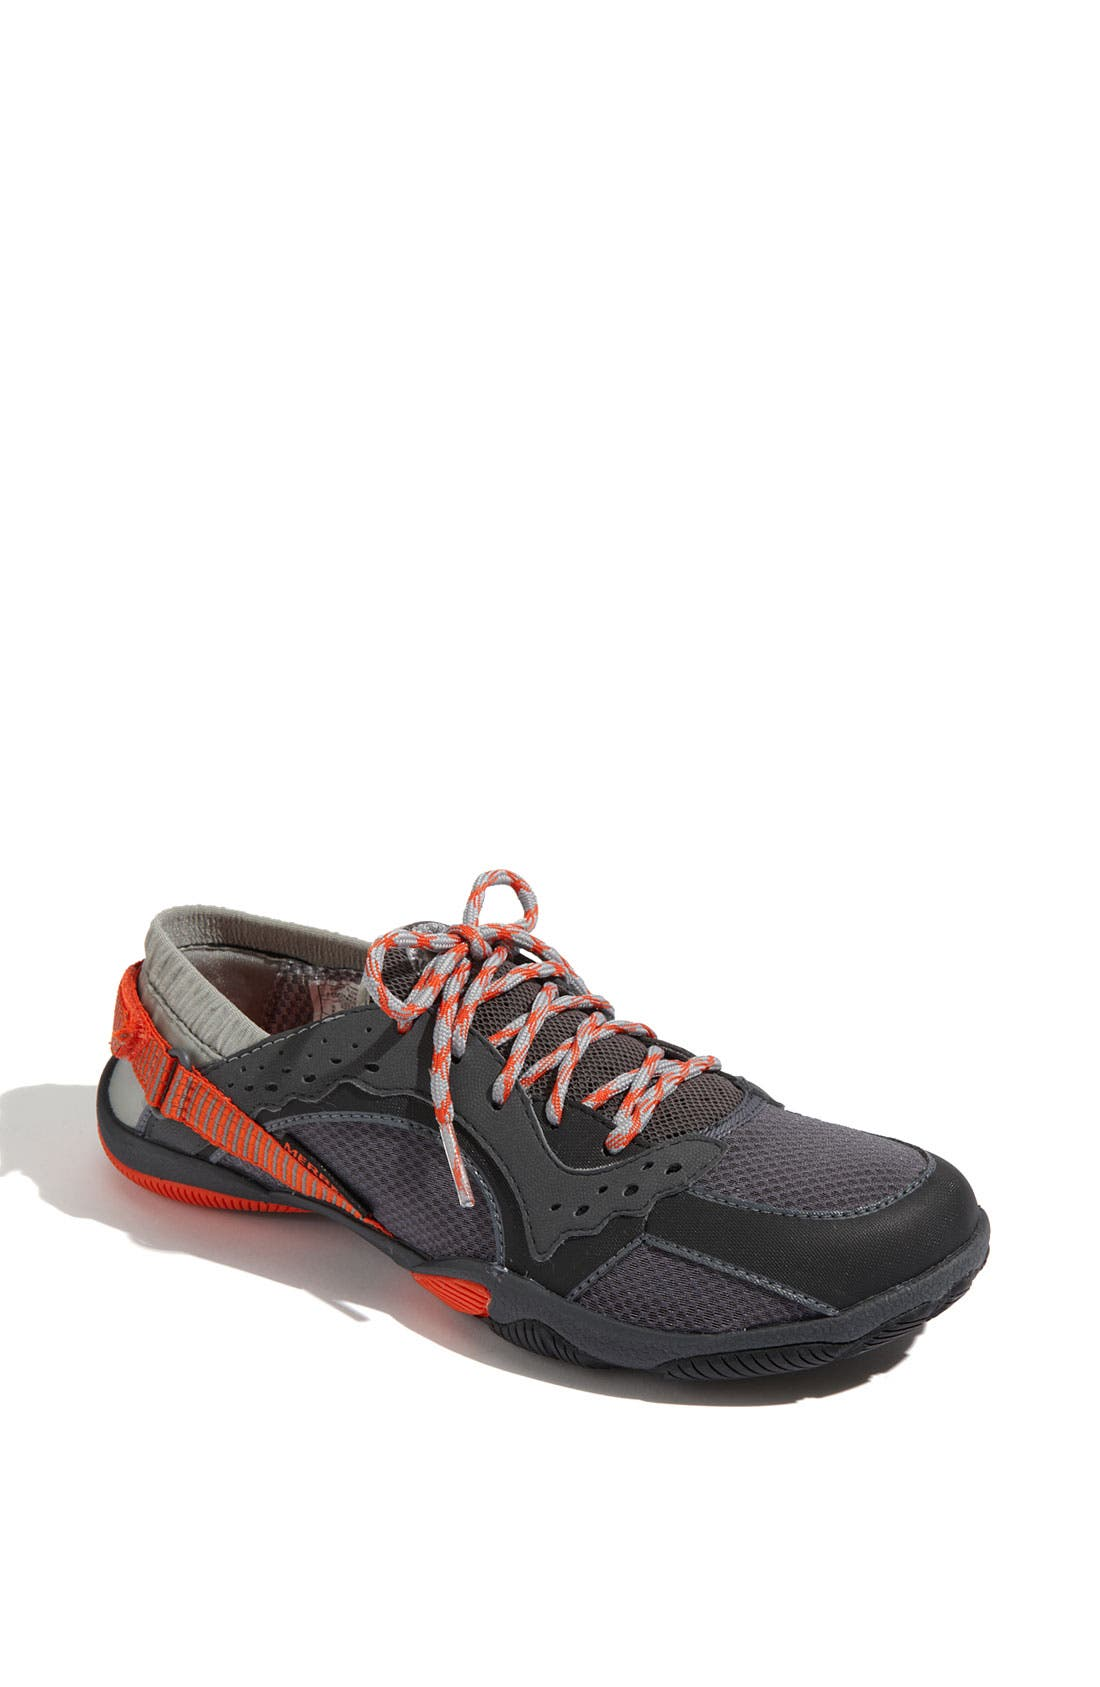 Main Image - Merrell 'Swift Glove' Walking Shoe (Women)